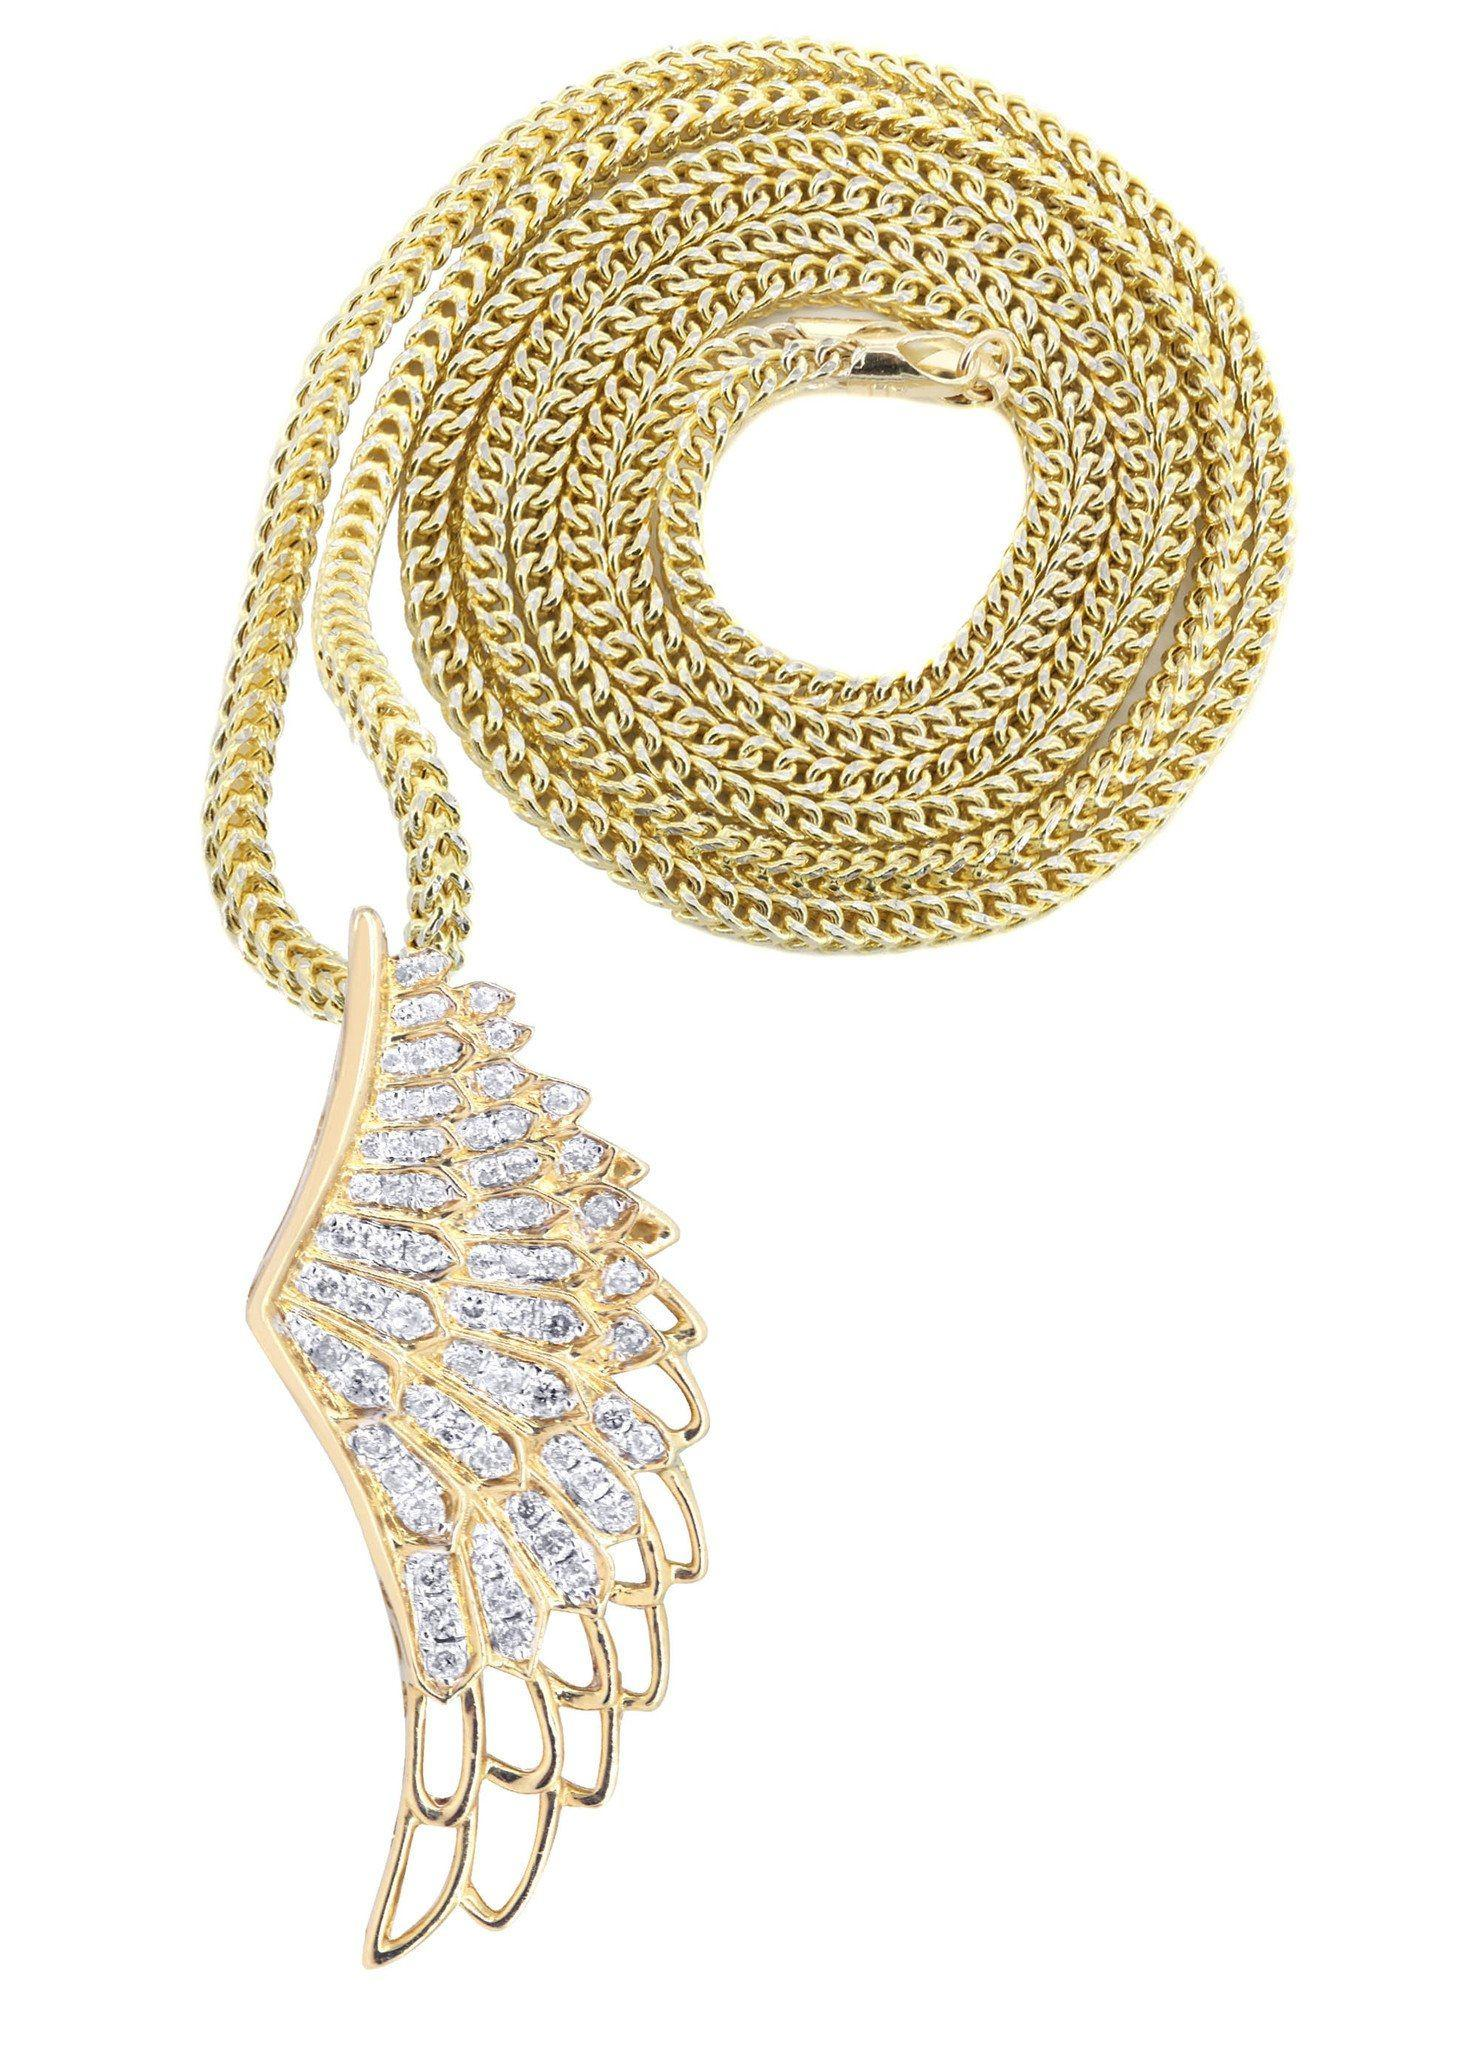 #FrostNYC Jewelry - FROST NYC 10K Yellow Gold Angel Wing Diamond Pendant &  Franco Chain / 0 82 Carats - AdoreWe com